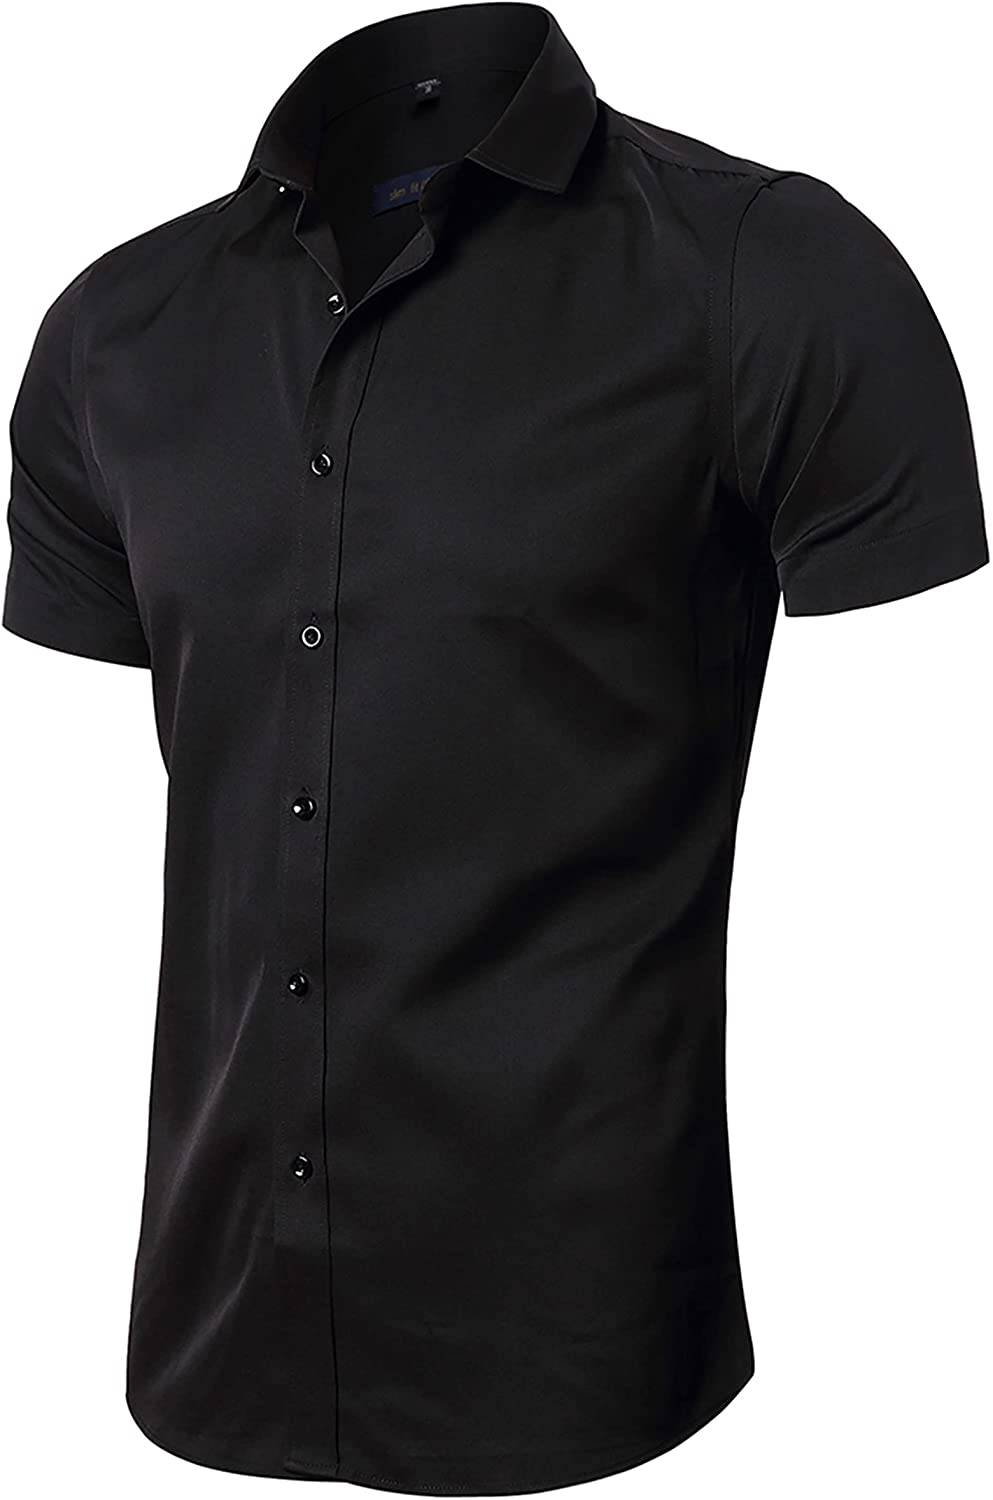 FLY HAWK Mens Dress Shirts Selling and selling 2021 new Fitted Bamboo Fiber Sleeve Short Ela